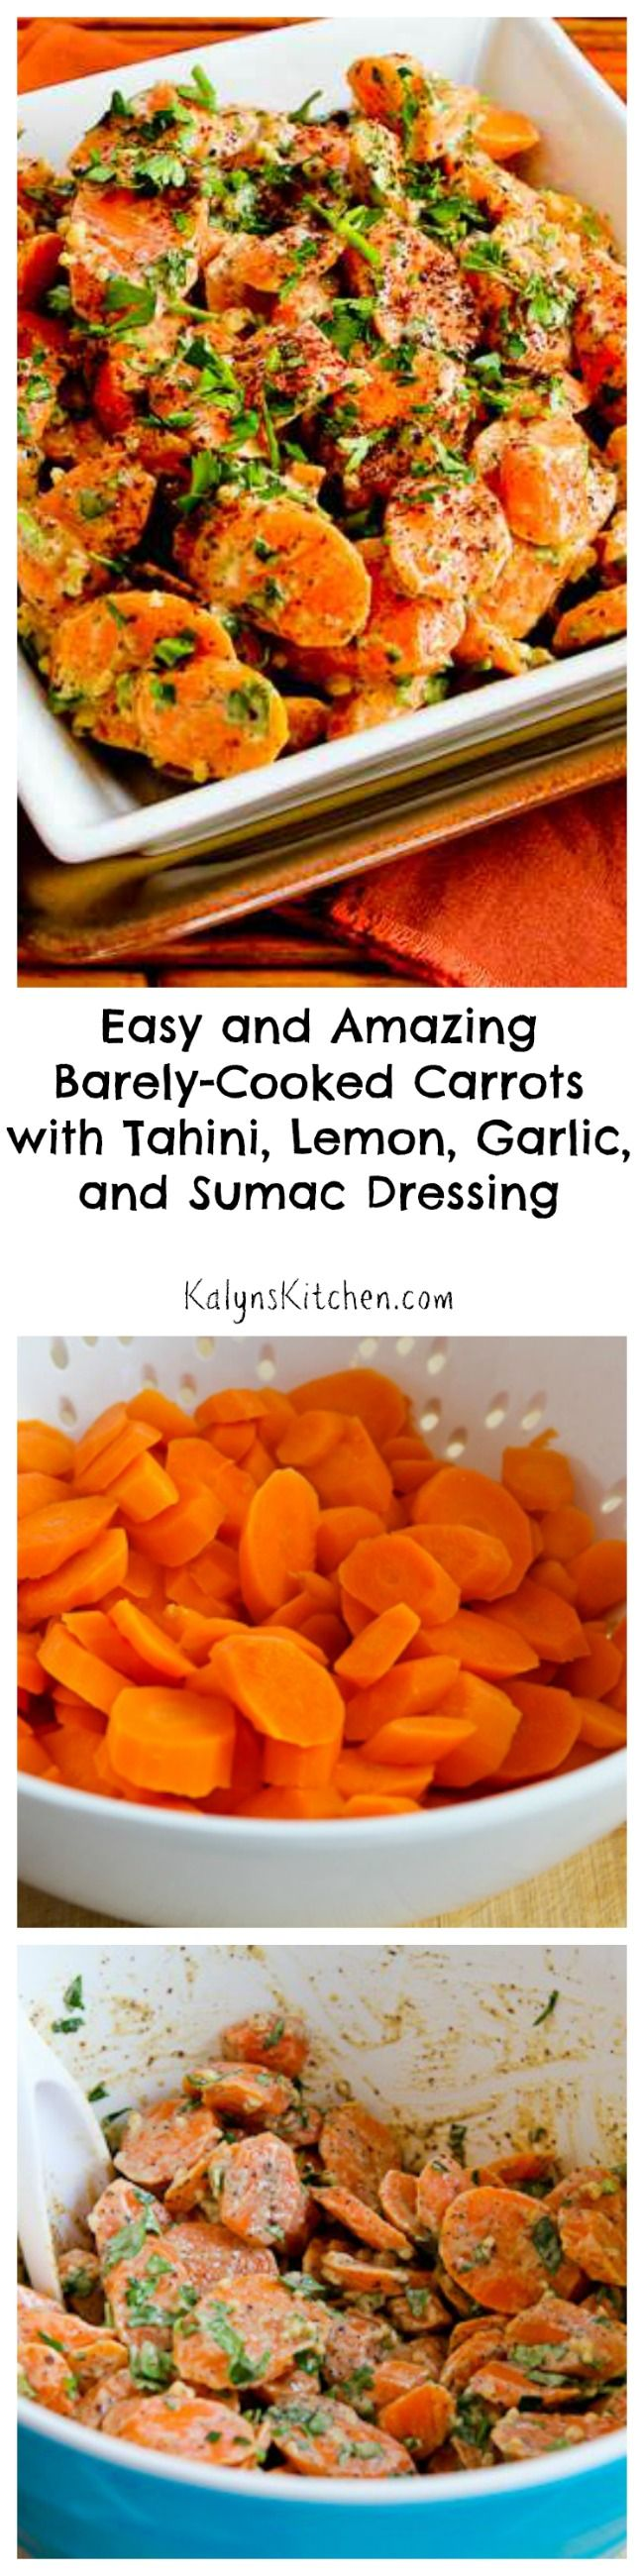 ... Barely-Cooked Carrots with Tahini, Lemon, Garlic, and Sumac Dressing